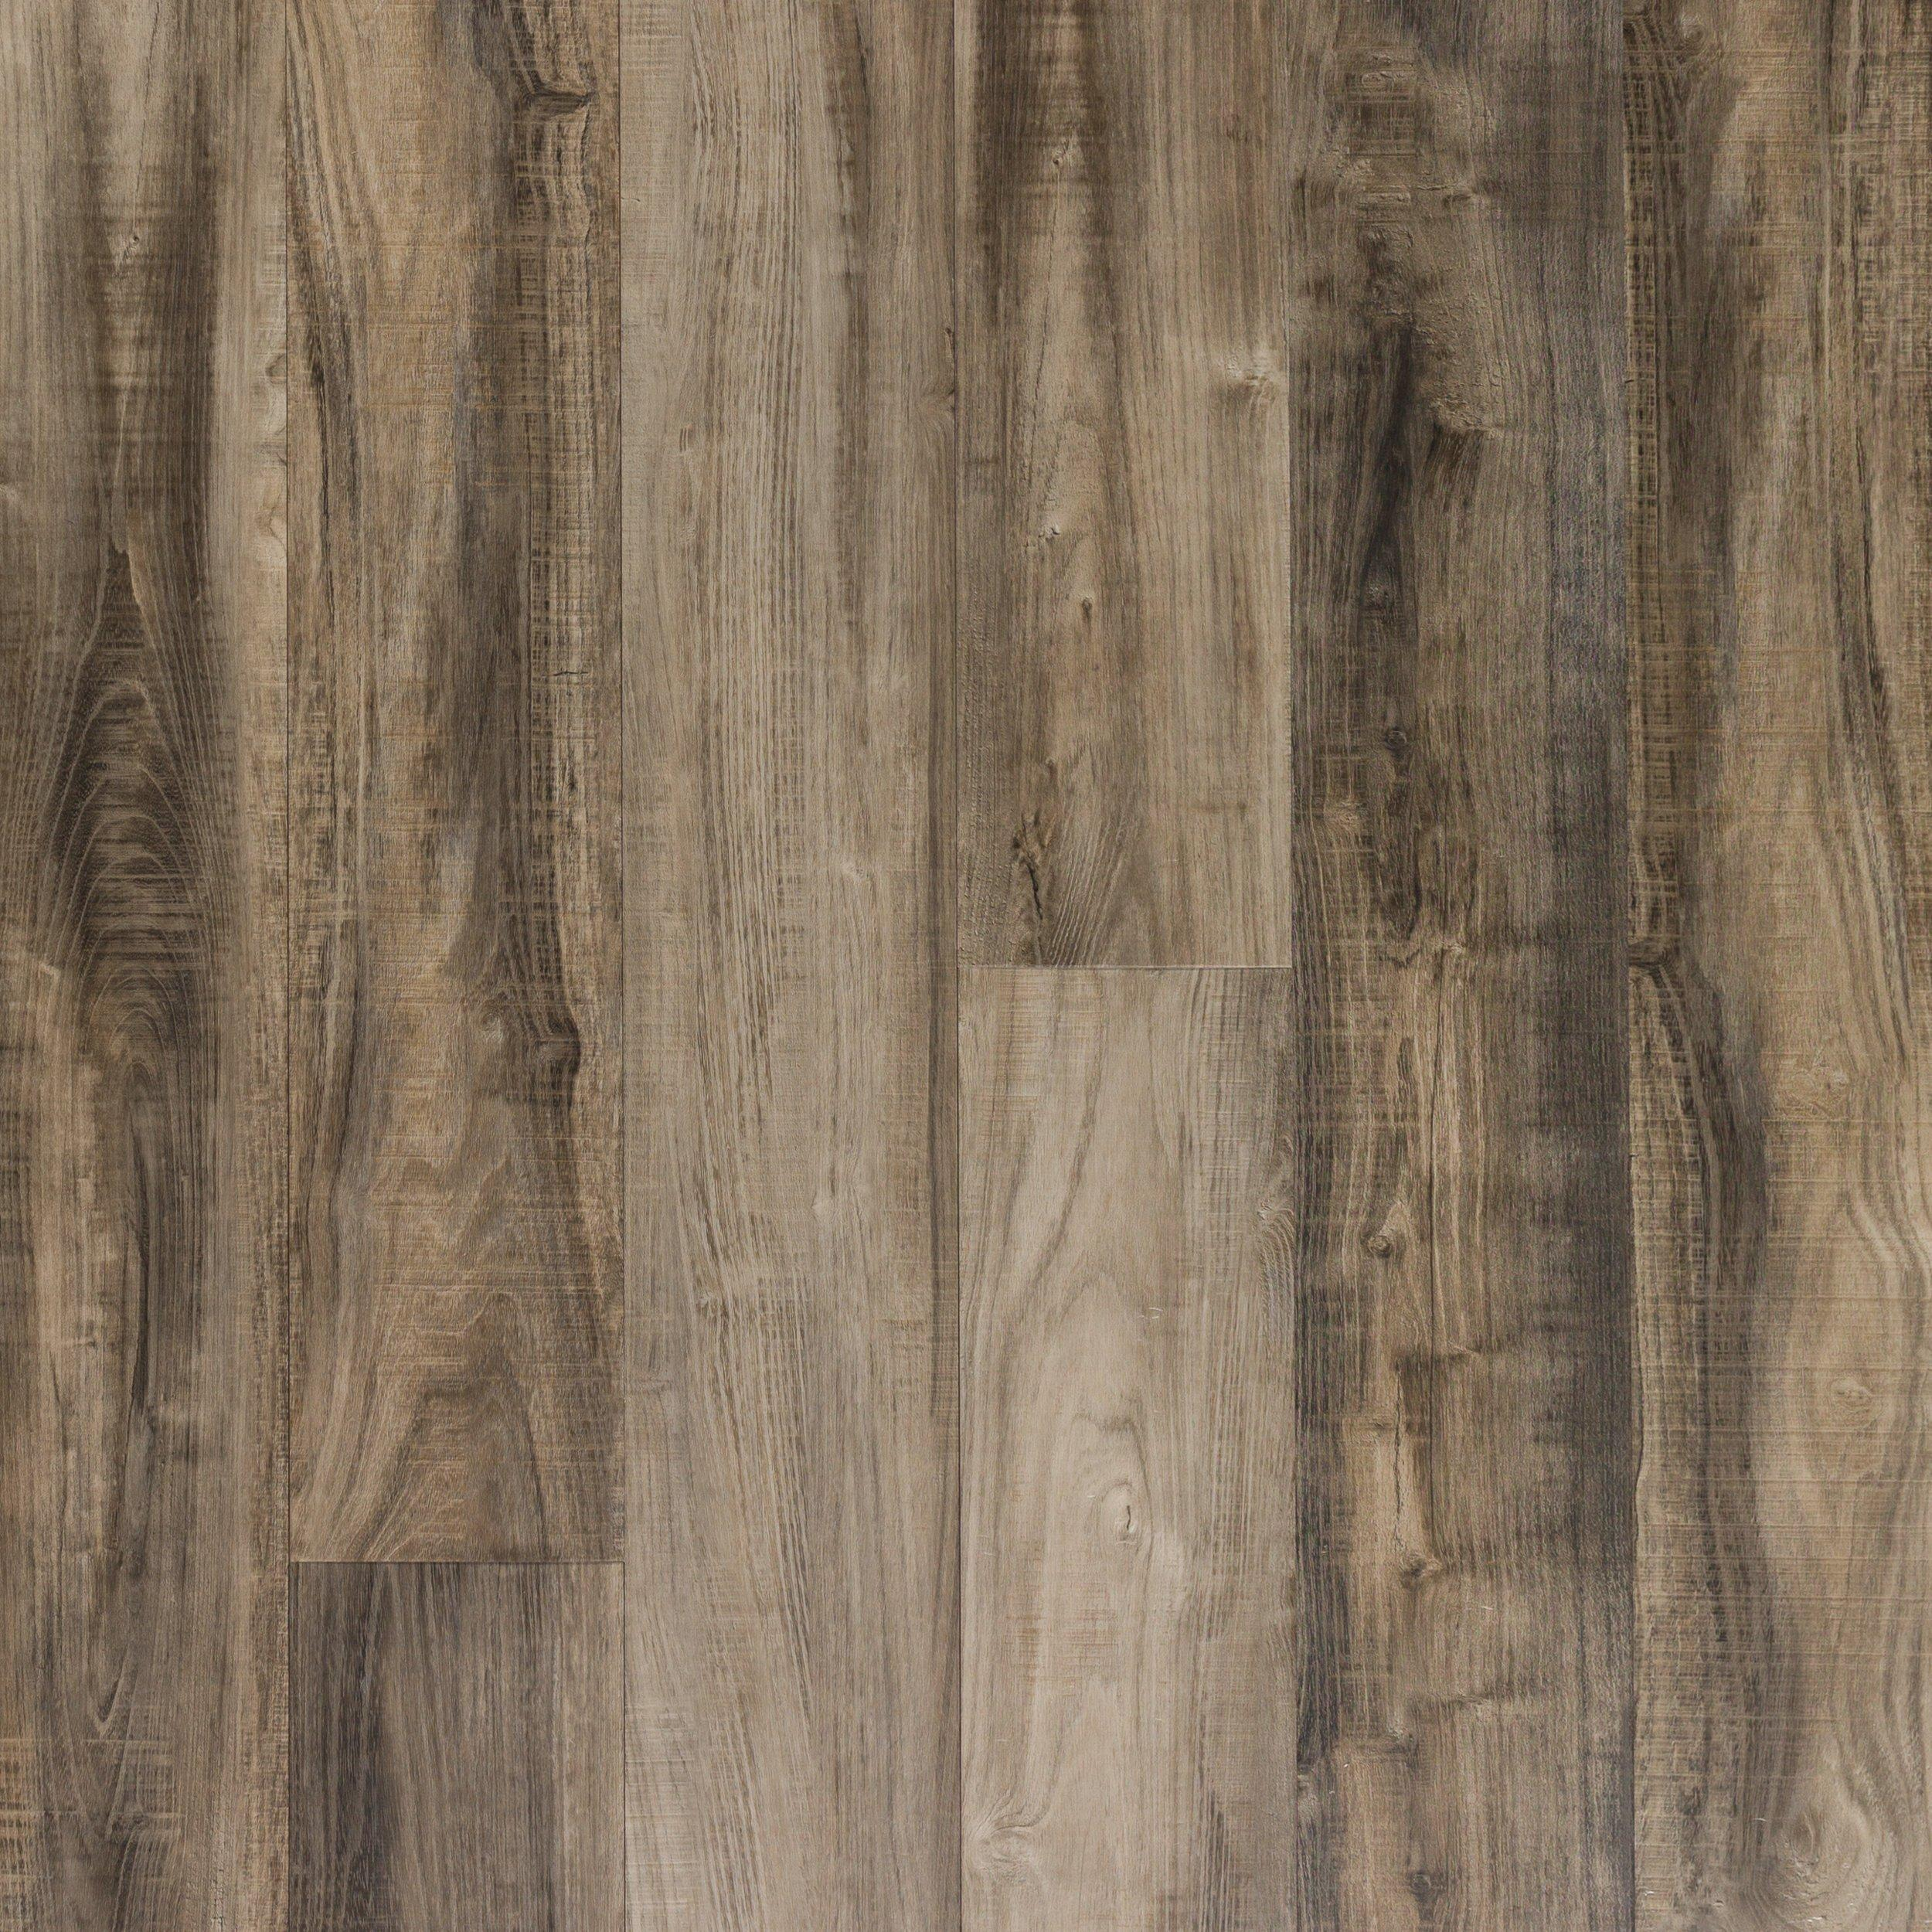 water resistant laminate flooring kitchen stuff for sale nucore ombre gray hand scraped plank with cork back - 6 ...